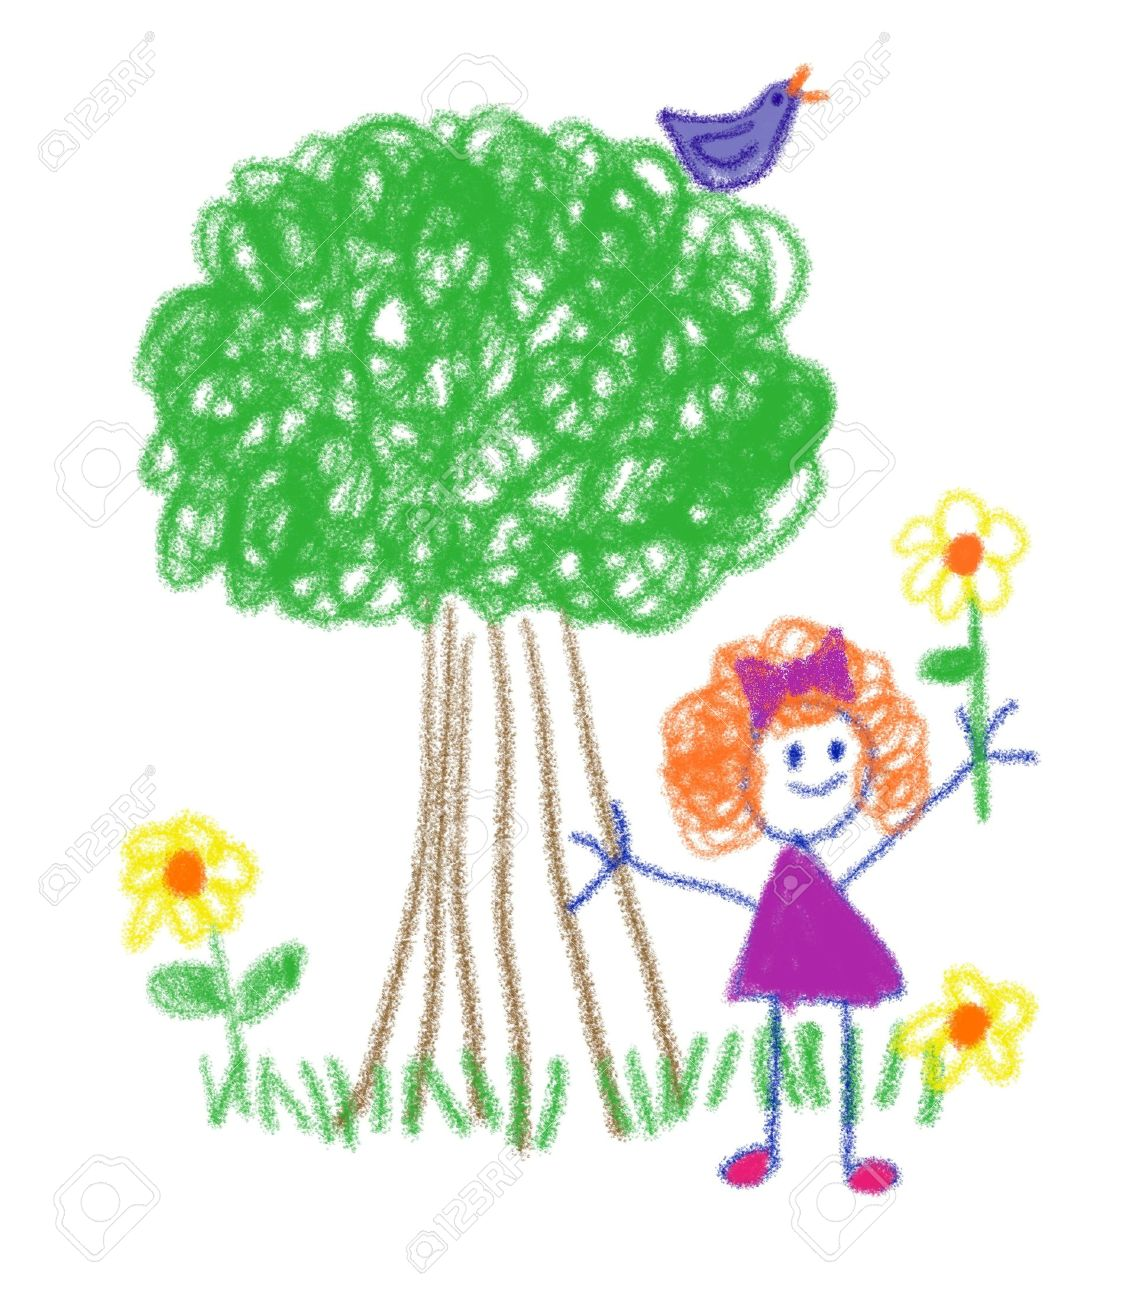 Drawing of little girl holding a flower in the style of a child's crayon drawing Stock Photo - 5451620